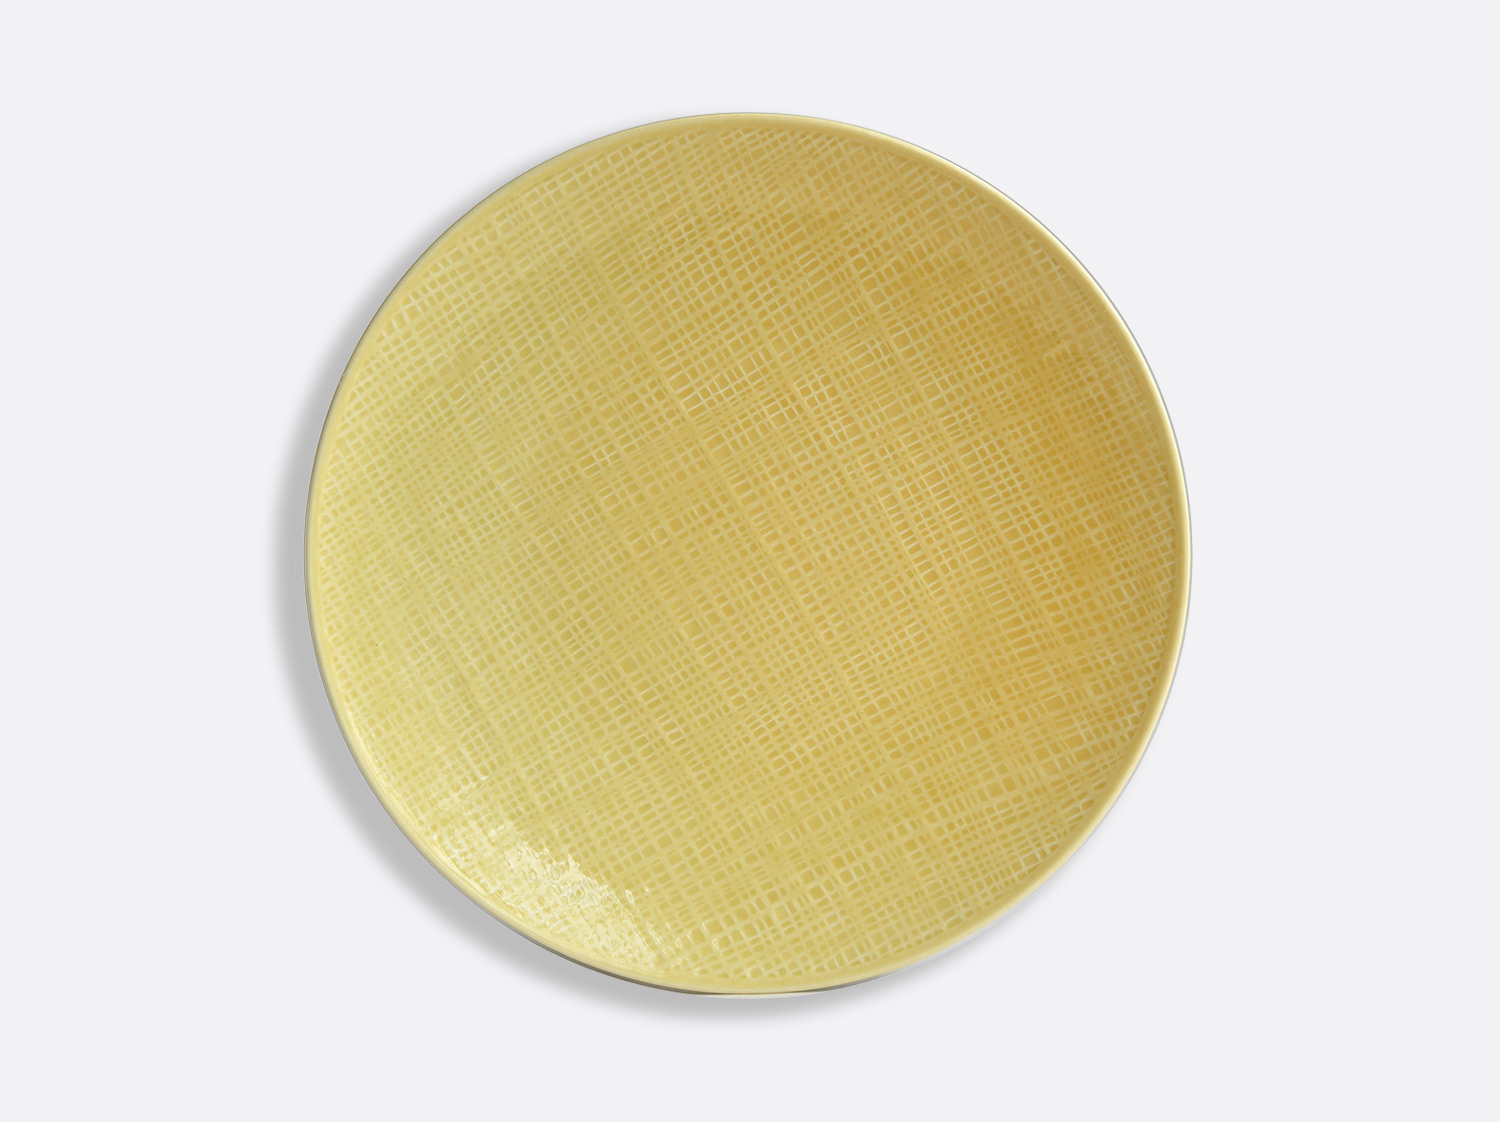 China Yellow dinner plate 26 cm of the collection ORGANZA JAUNE PAILLE | Bernardaud